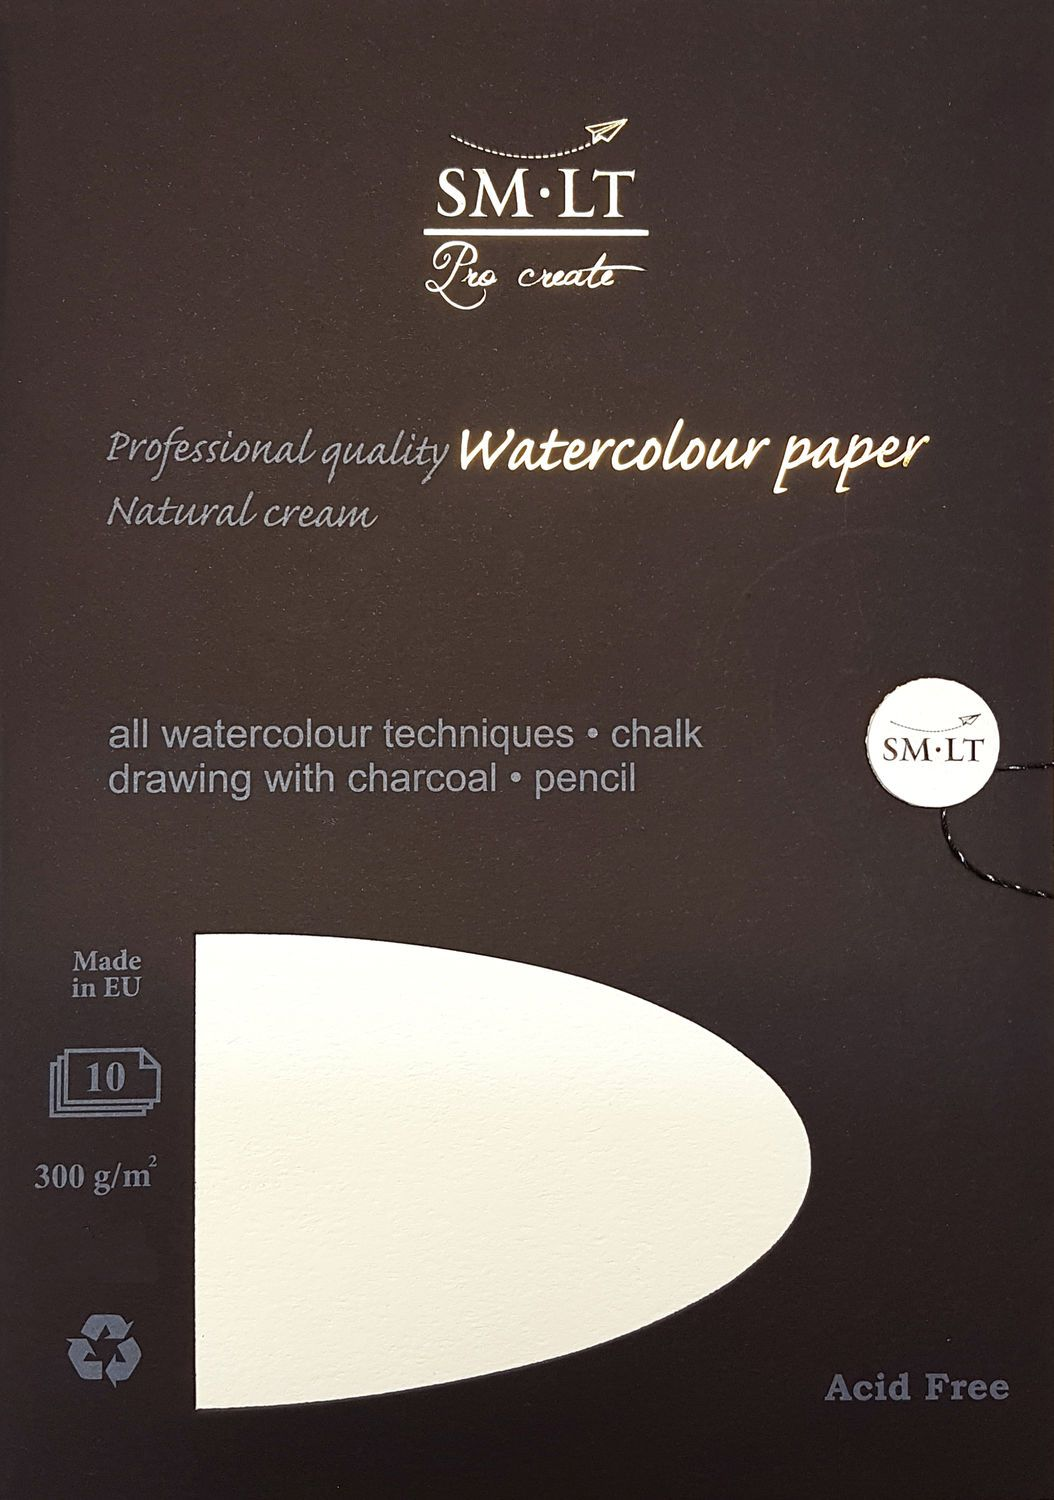 SM-LT Pro Crate akvarellipaperi - Watercolor paper. #watercolorpaper